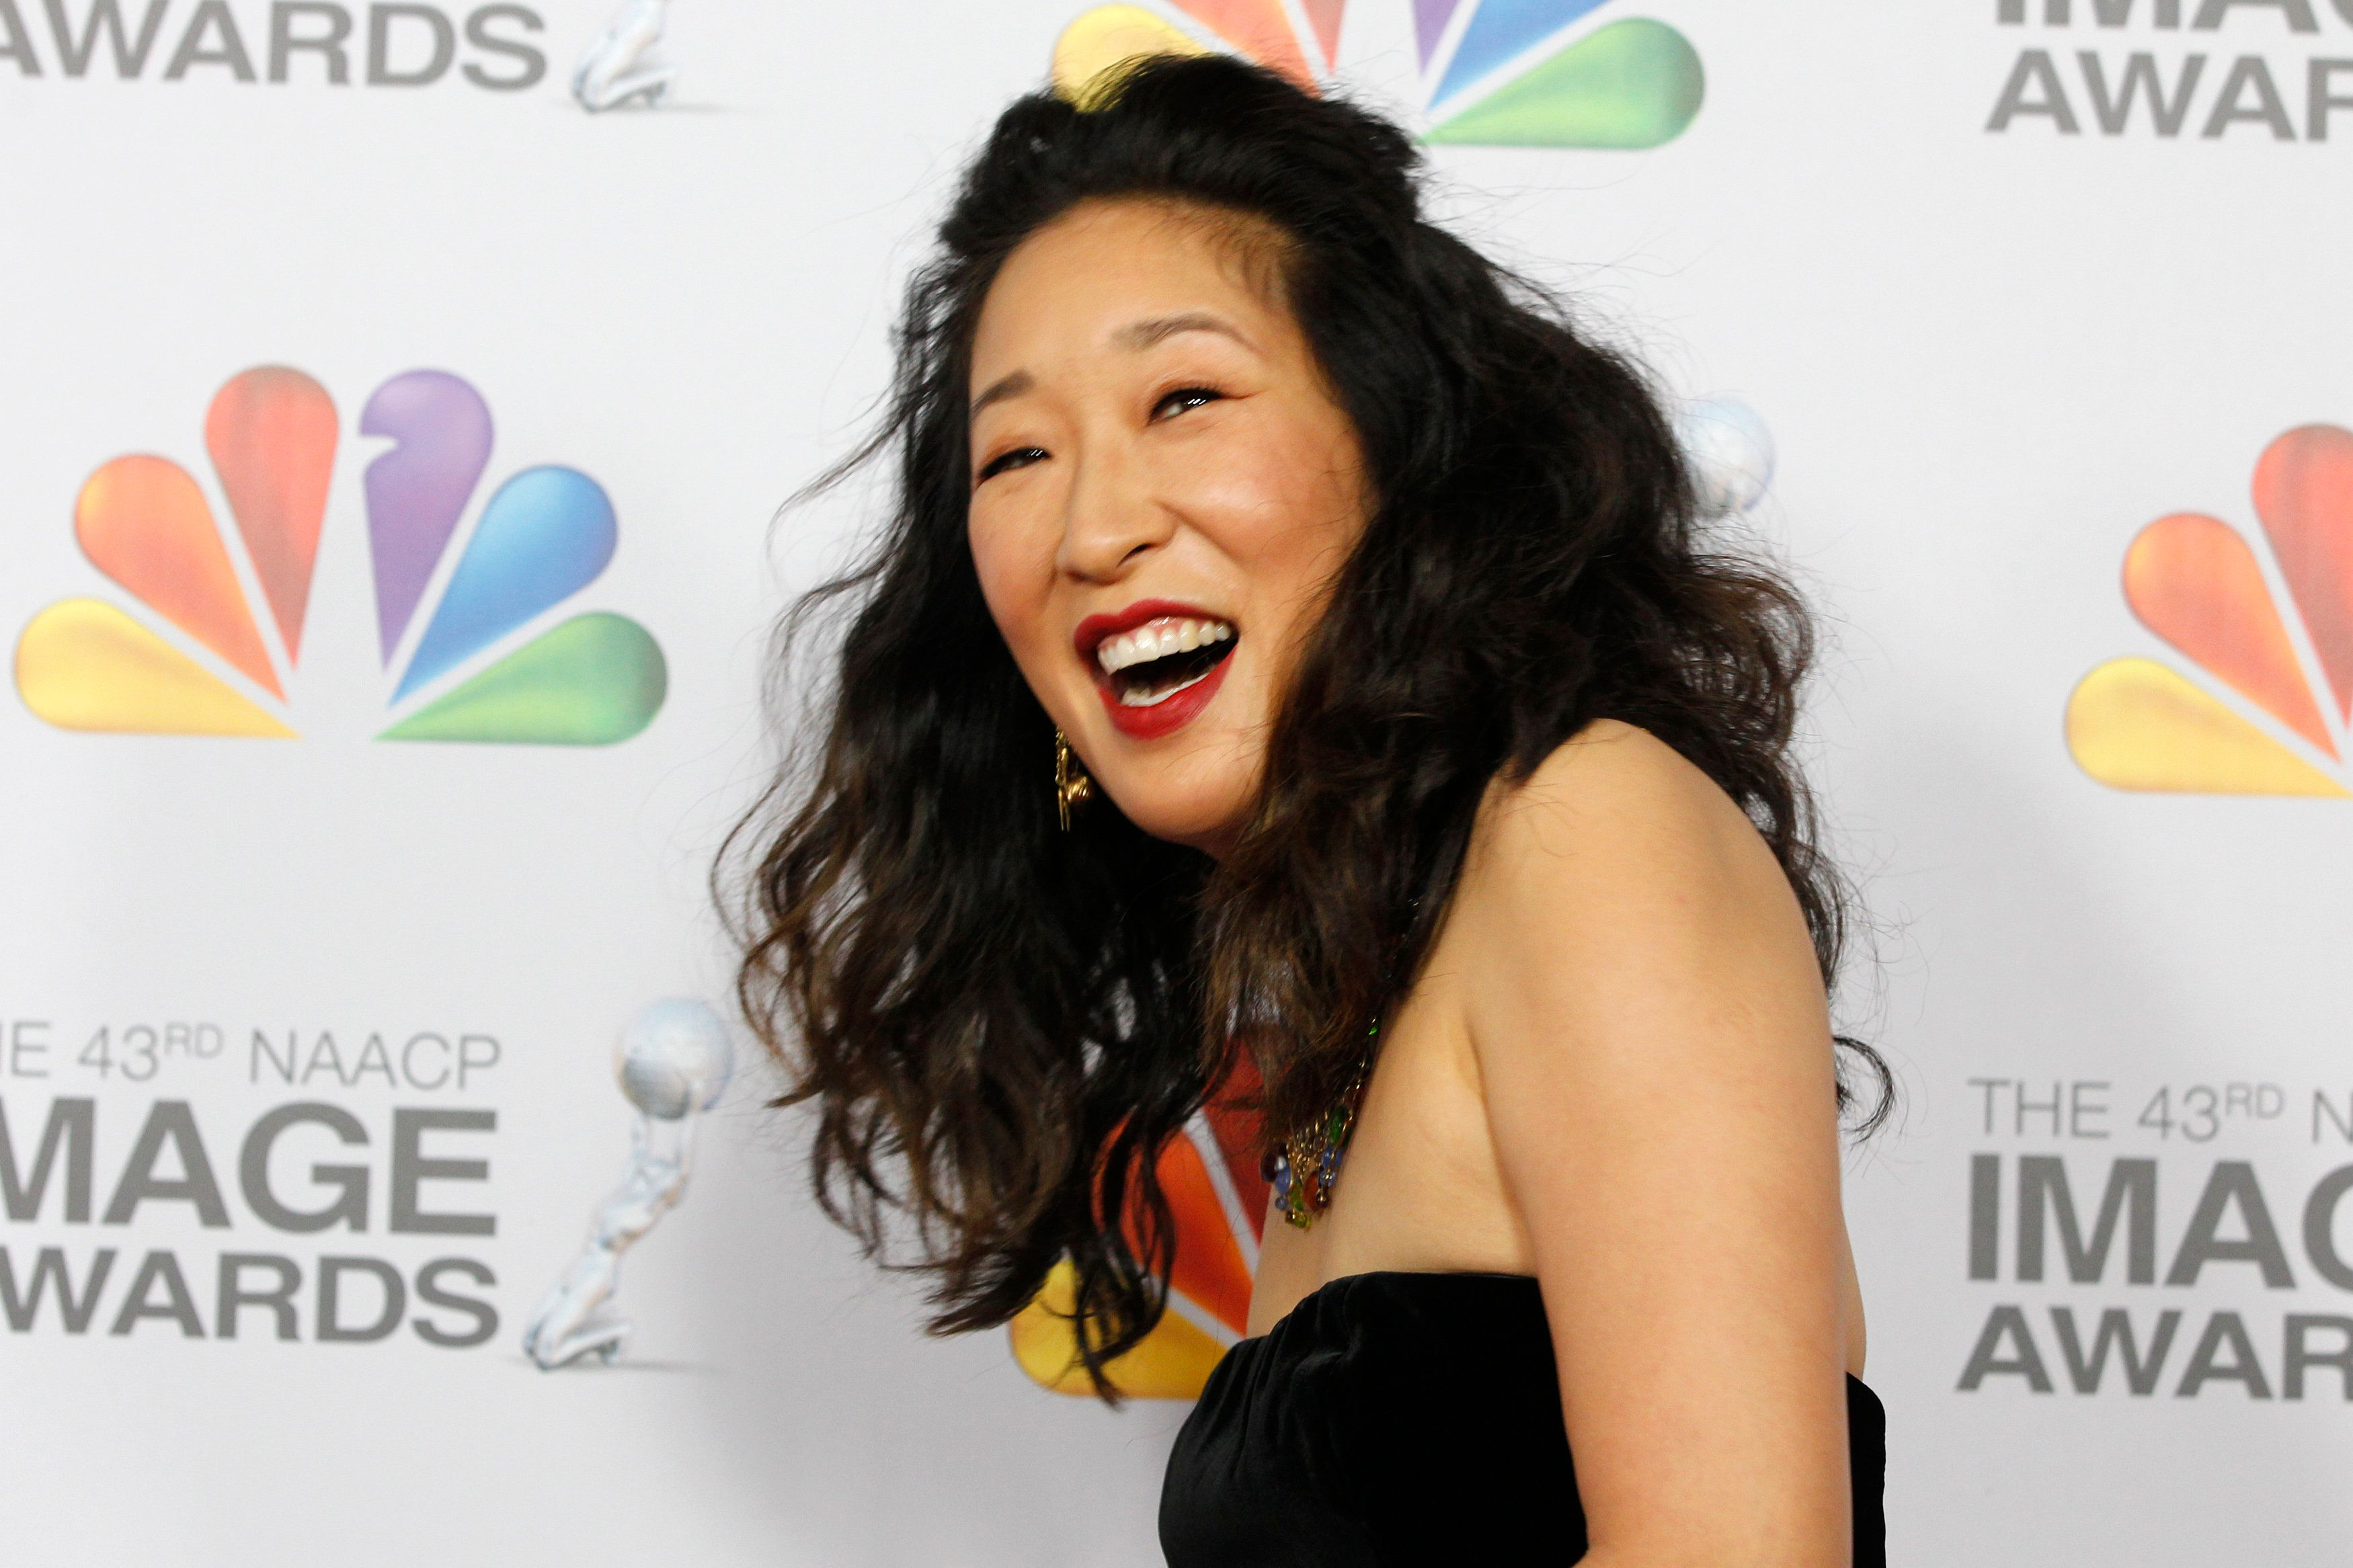 Actress Sandra Oh arrives at the 43rd NAACP Image Awards in Los Angeles, California February 17, 2012. REUTERS/Fred Prouser  (UNITED STATES - Tags: ENTERTAINMENT)   (IMAGEAWARDS-ARRIVALS)